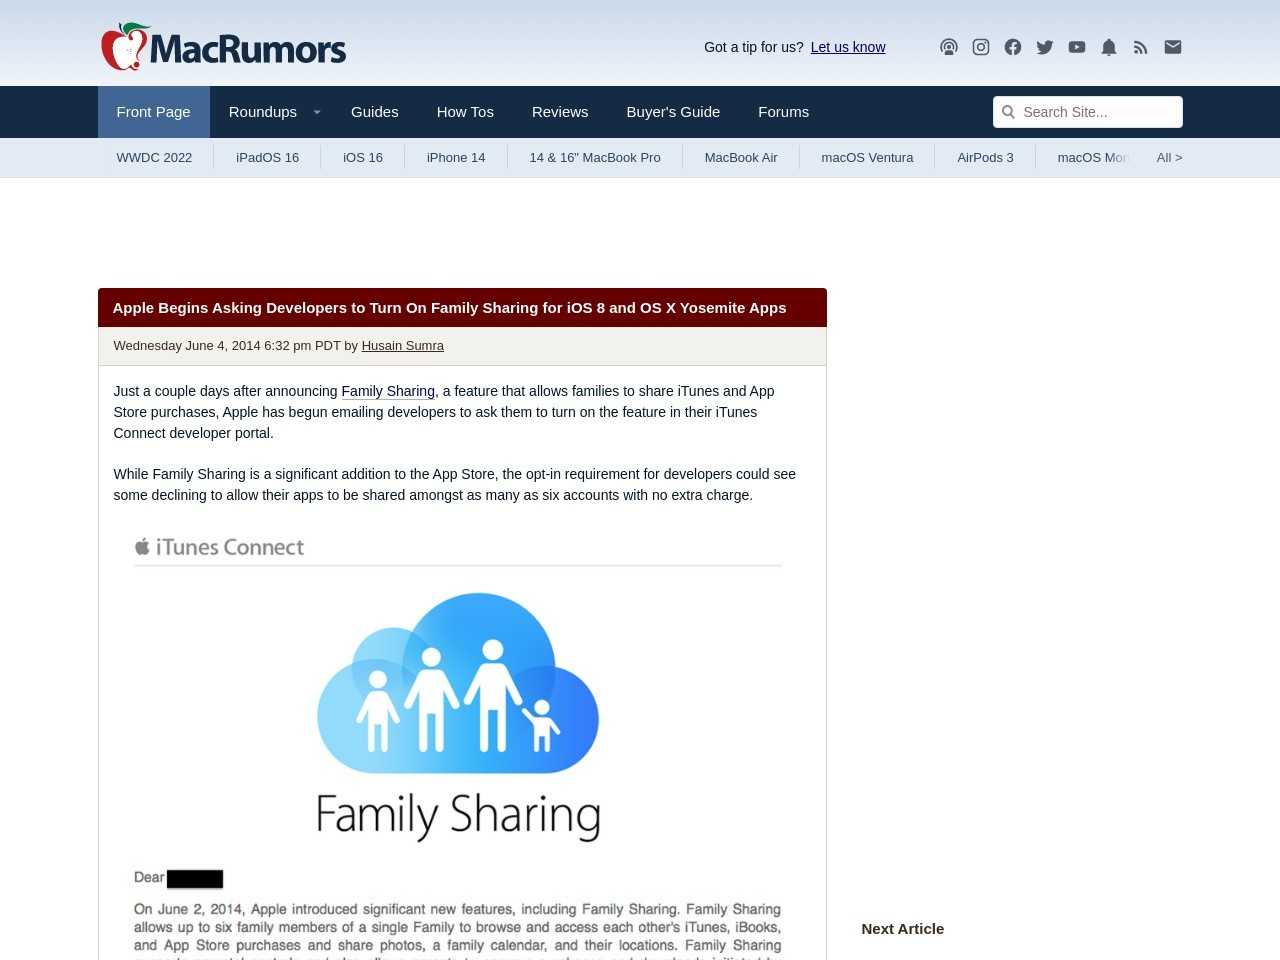 Apple Begins Asking Developers to Turn On Family Sharing …